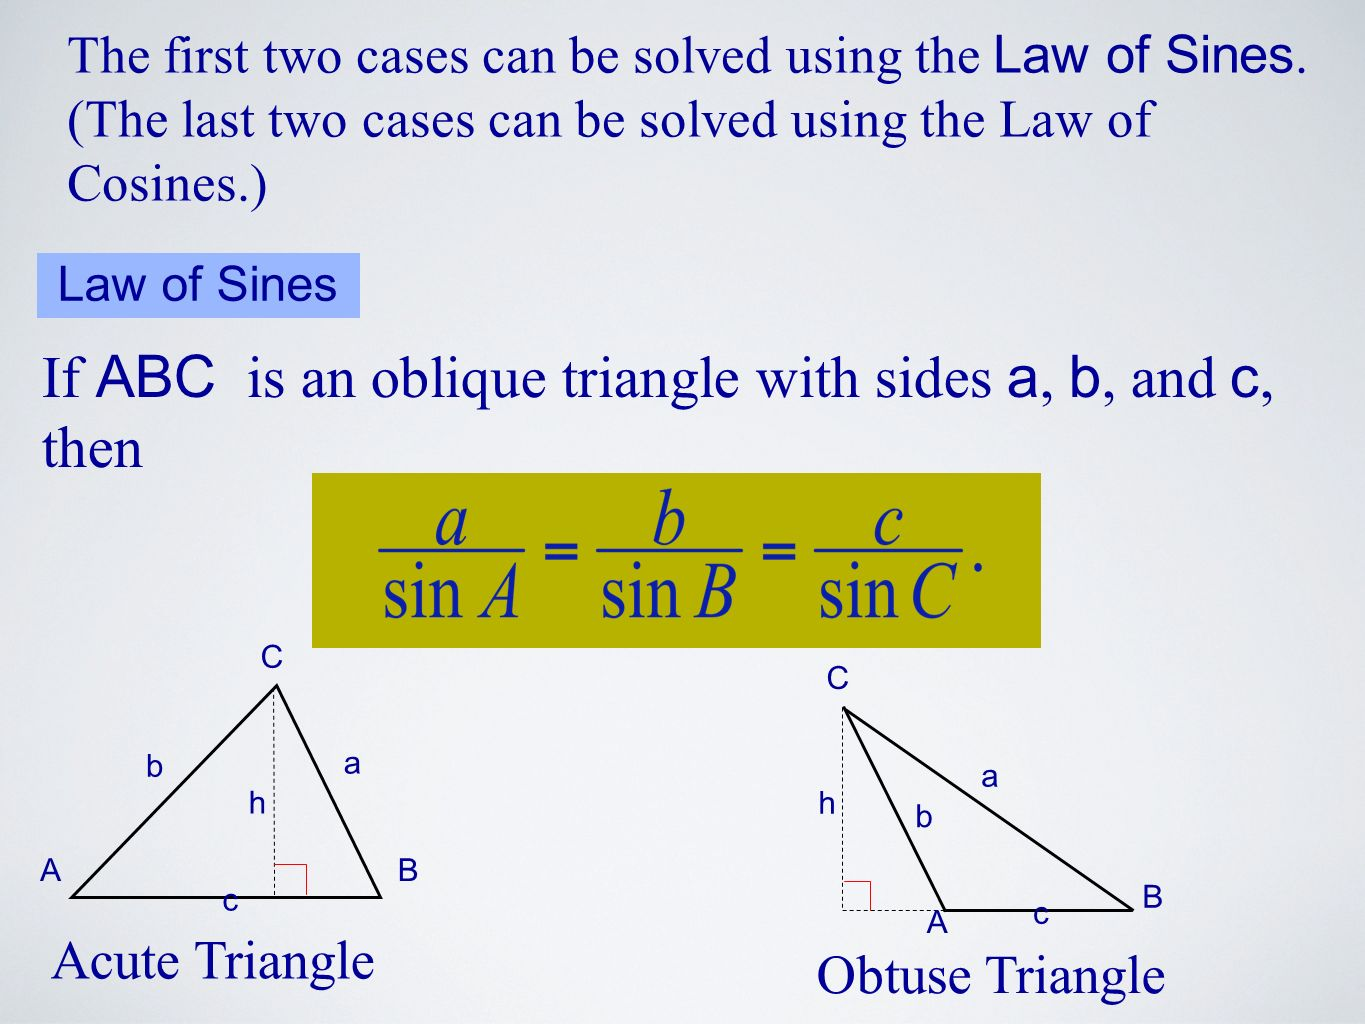 Solving For The Missing Part Of An Oblique Triangle